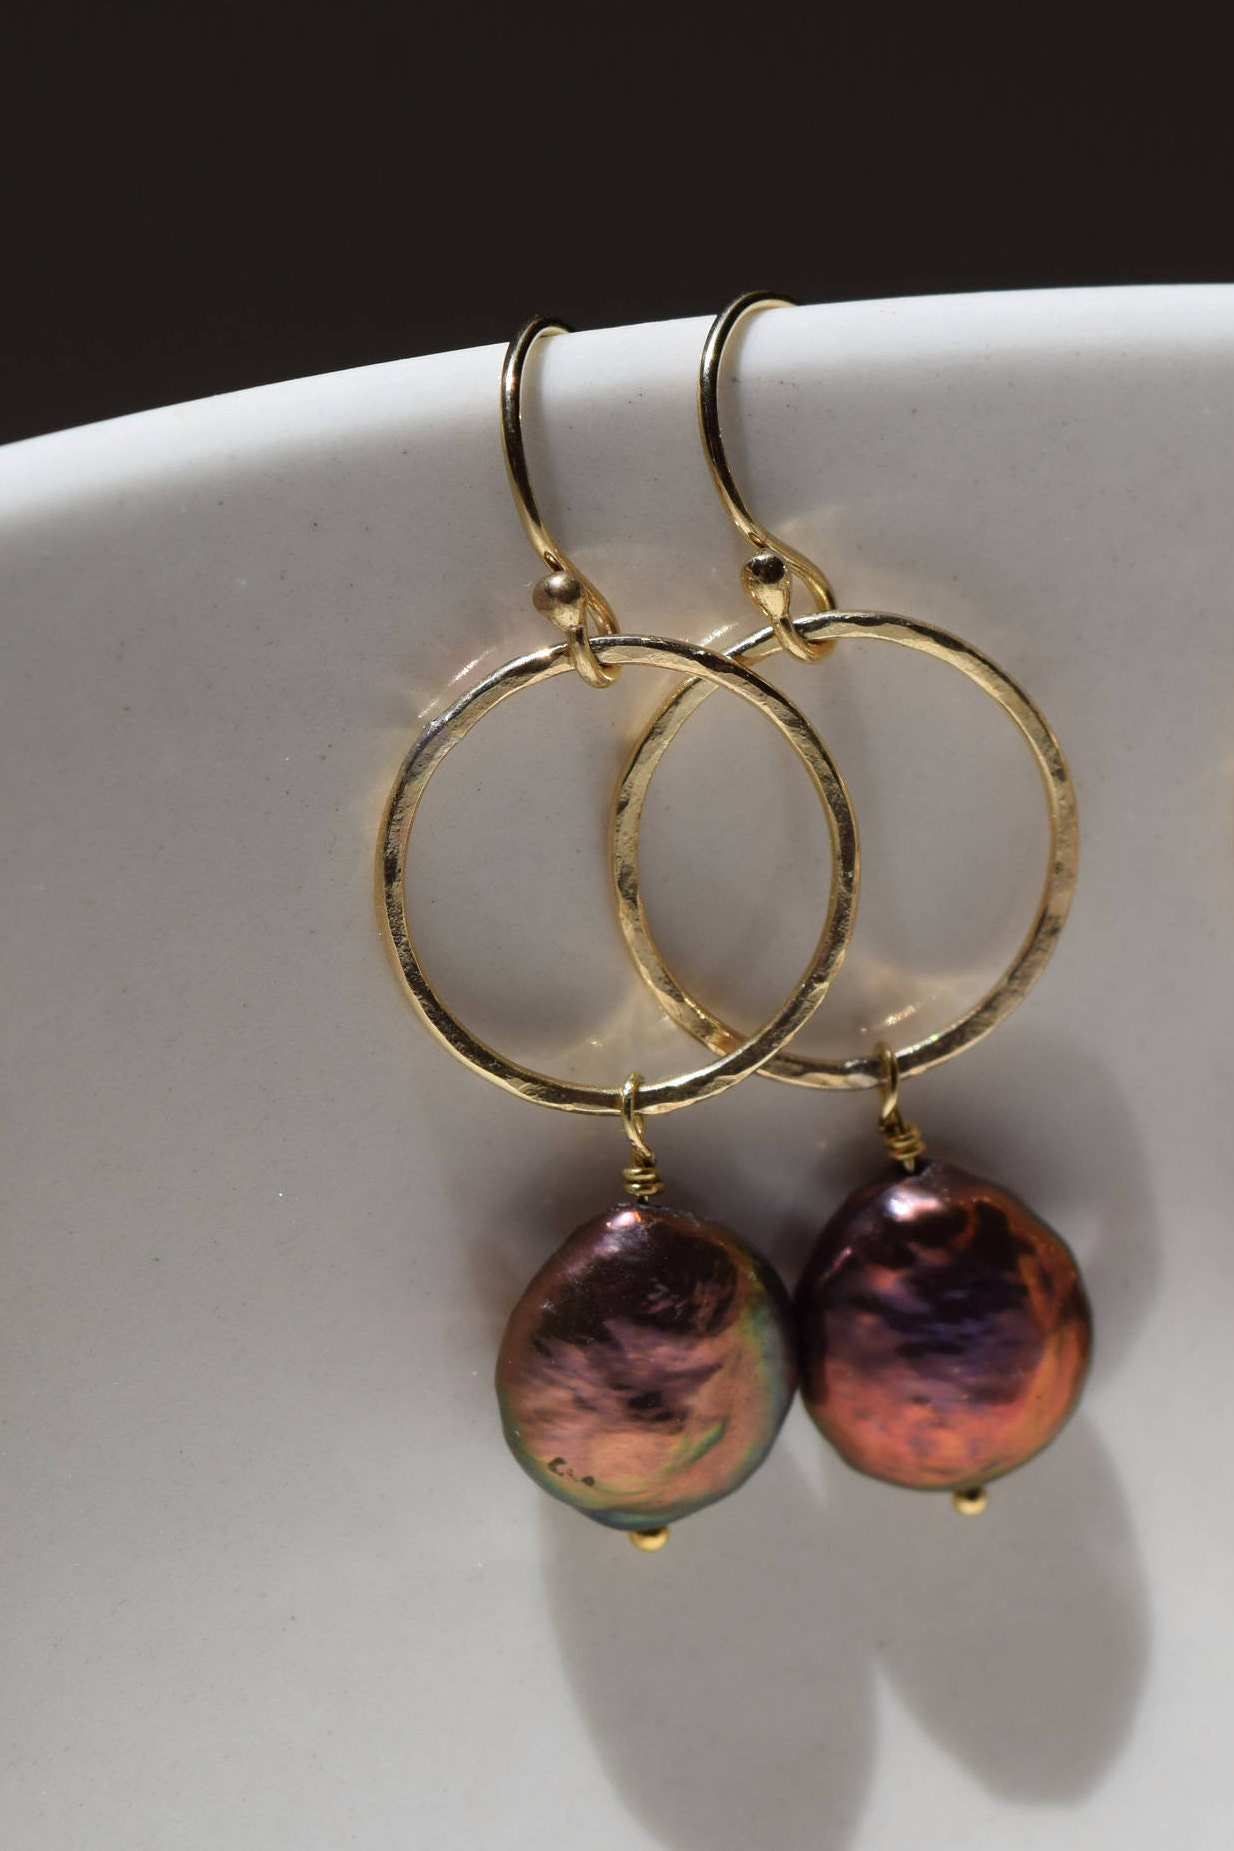 Genuine Freshwater Peacock Coin Pearls Hang  From 12 Kt Gold Fill Hand Hammered Rings, 14 Kt Gold Fill Earwires